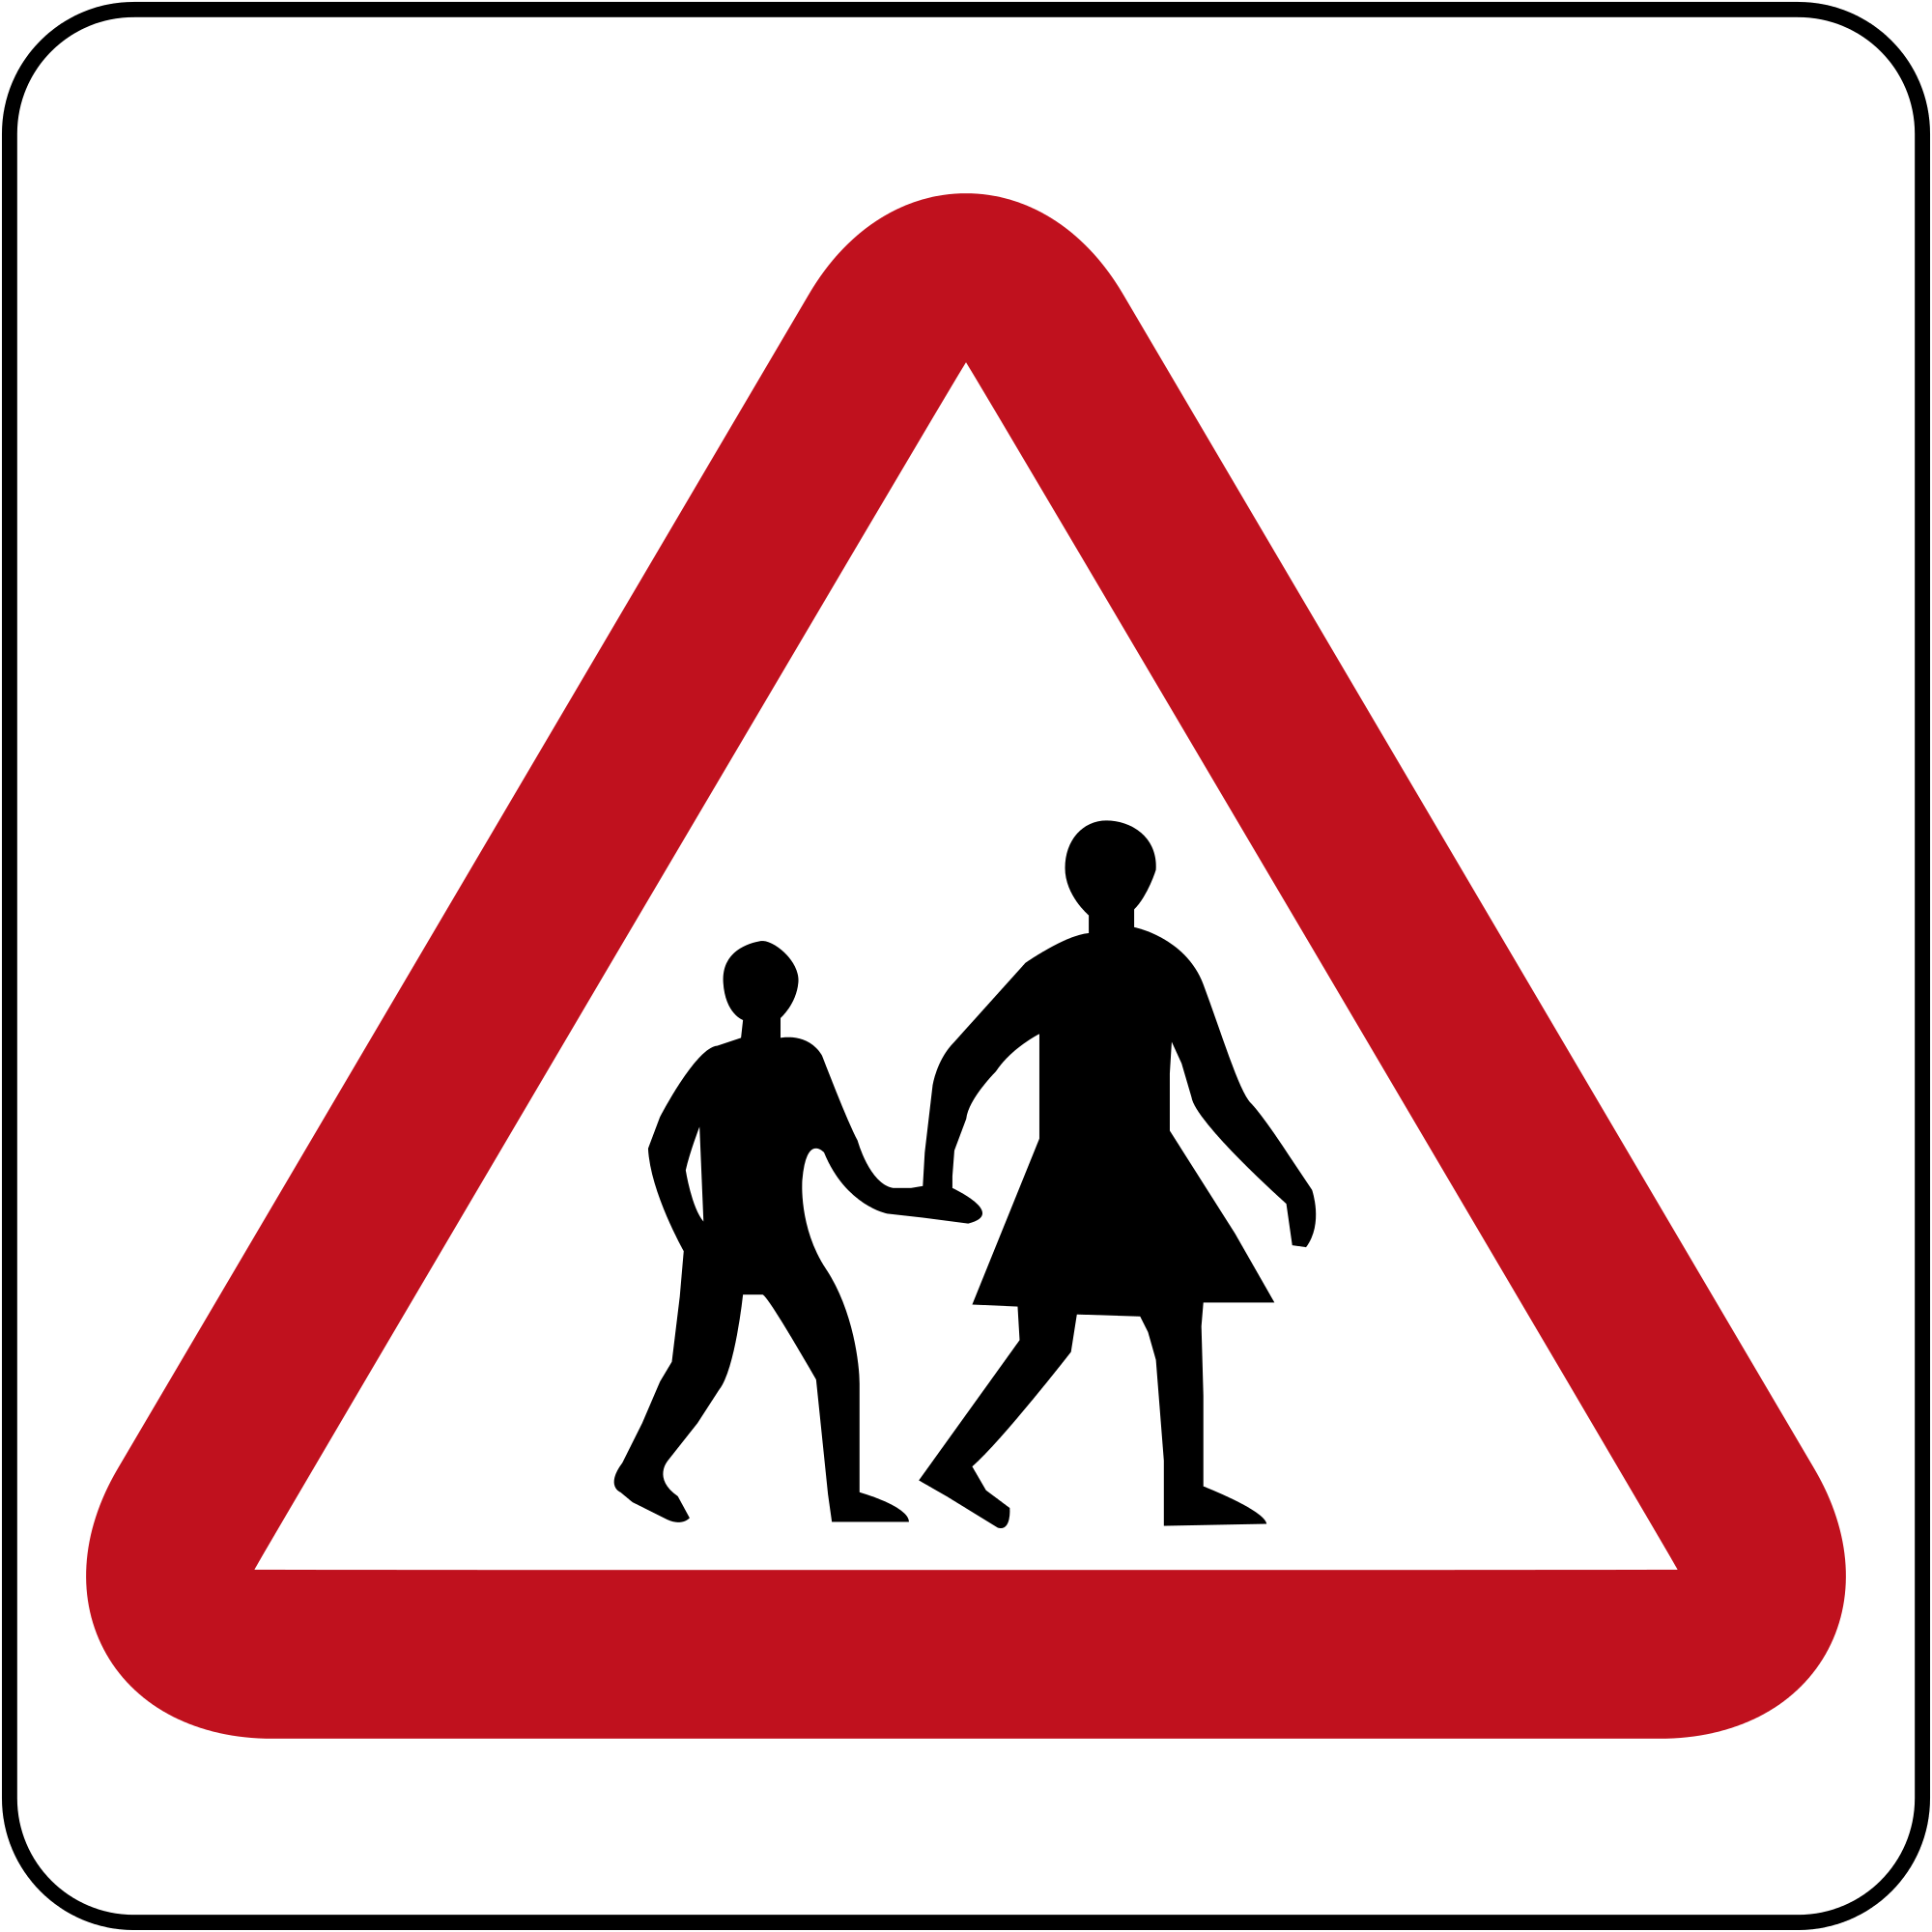 Road Crossing Clipart Children Crossing Signs Clipart Best